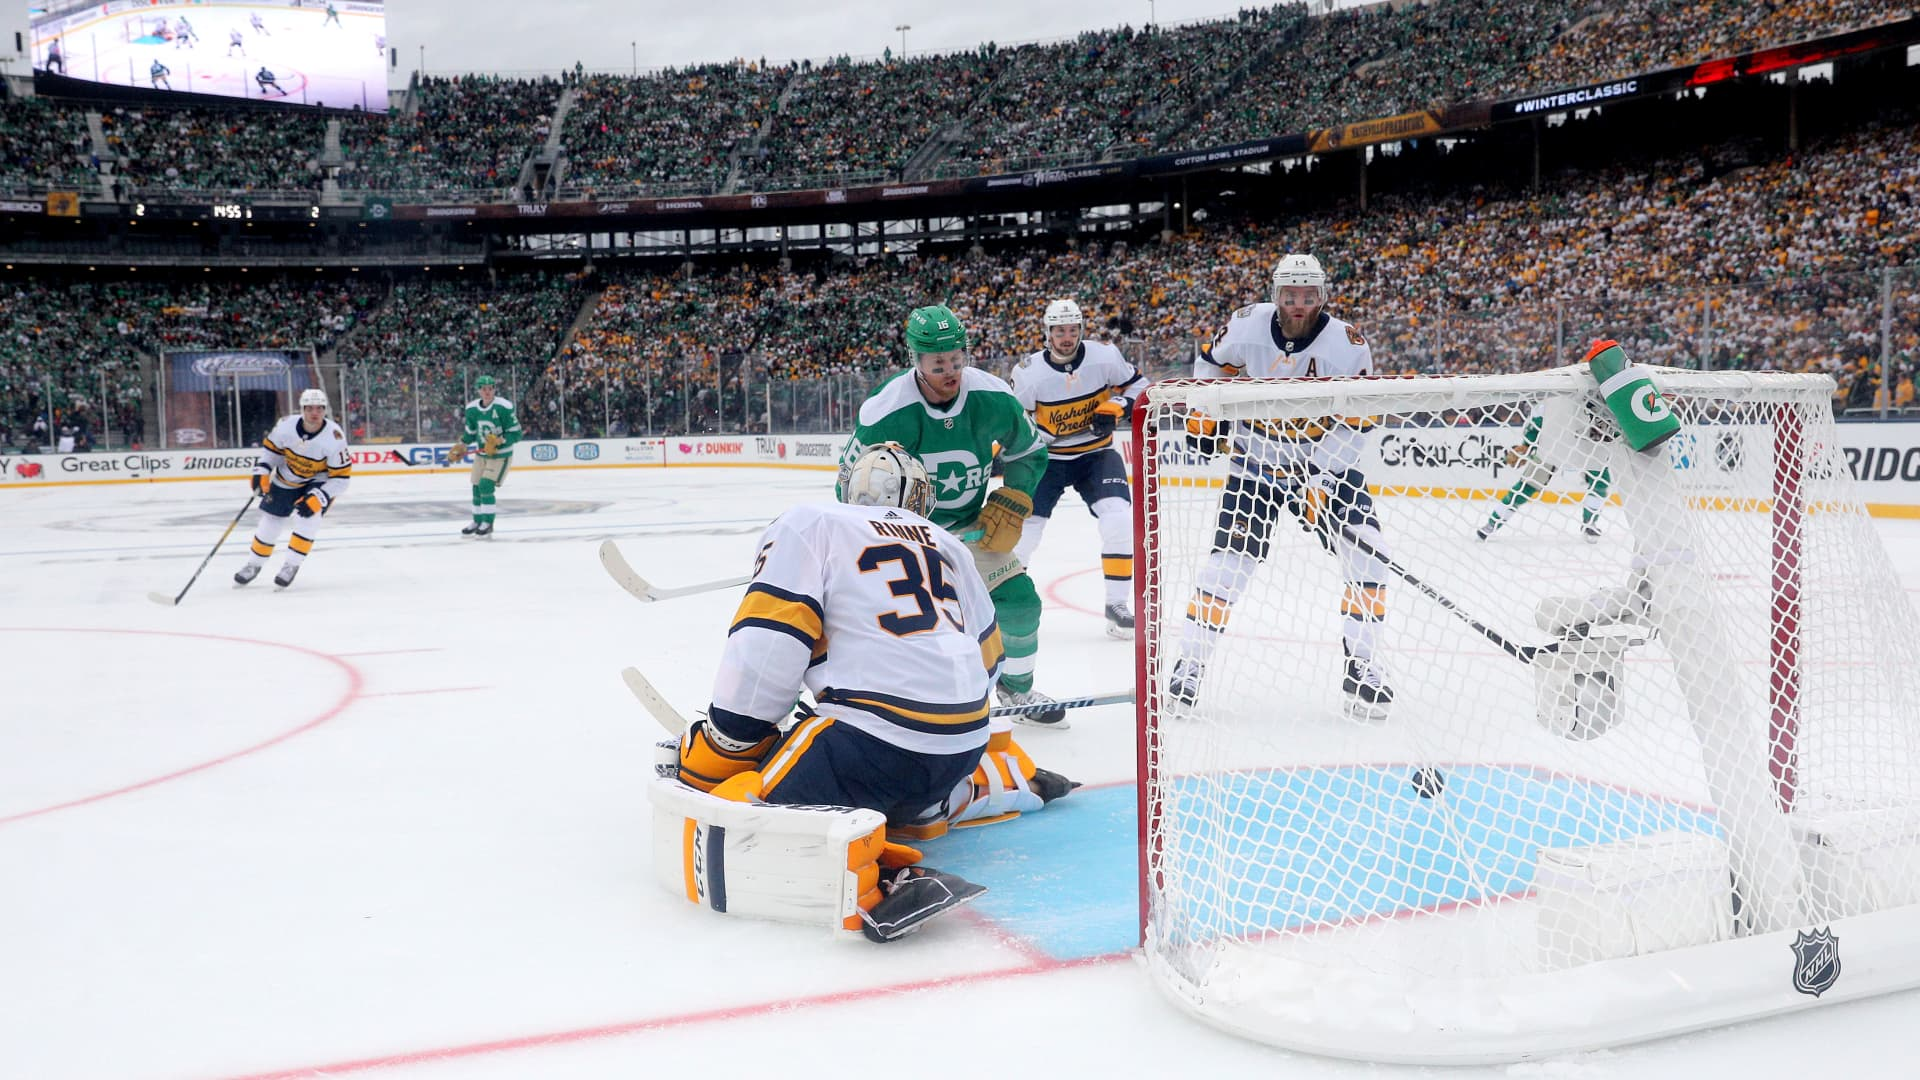 Joe Pavelski #16 and the Dallas Stars get a puck past Pekka Rinne #35 and the Nashville Predators during the Bridgestone NHL Winter Classic at Cotton Bowl on January 01, 2020 in Dallas, Texas.